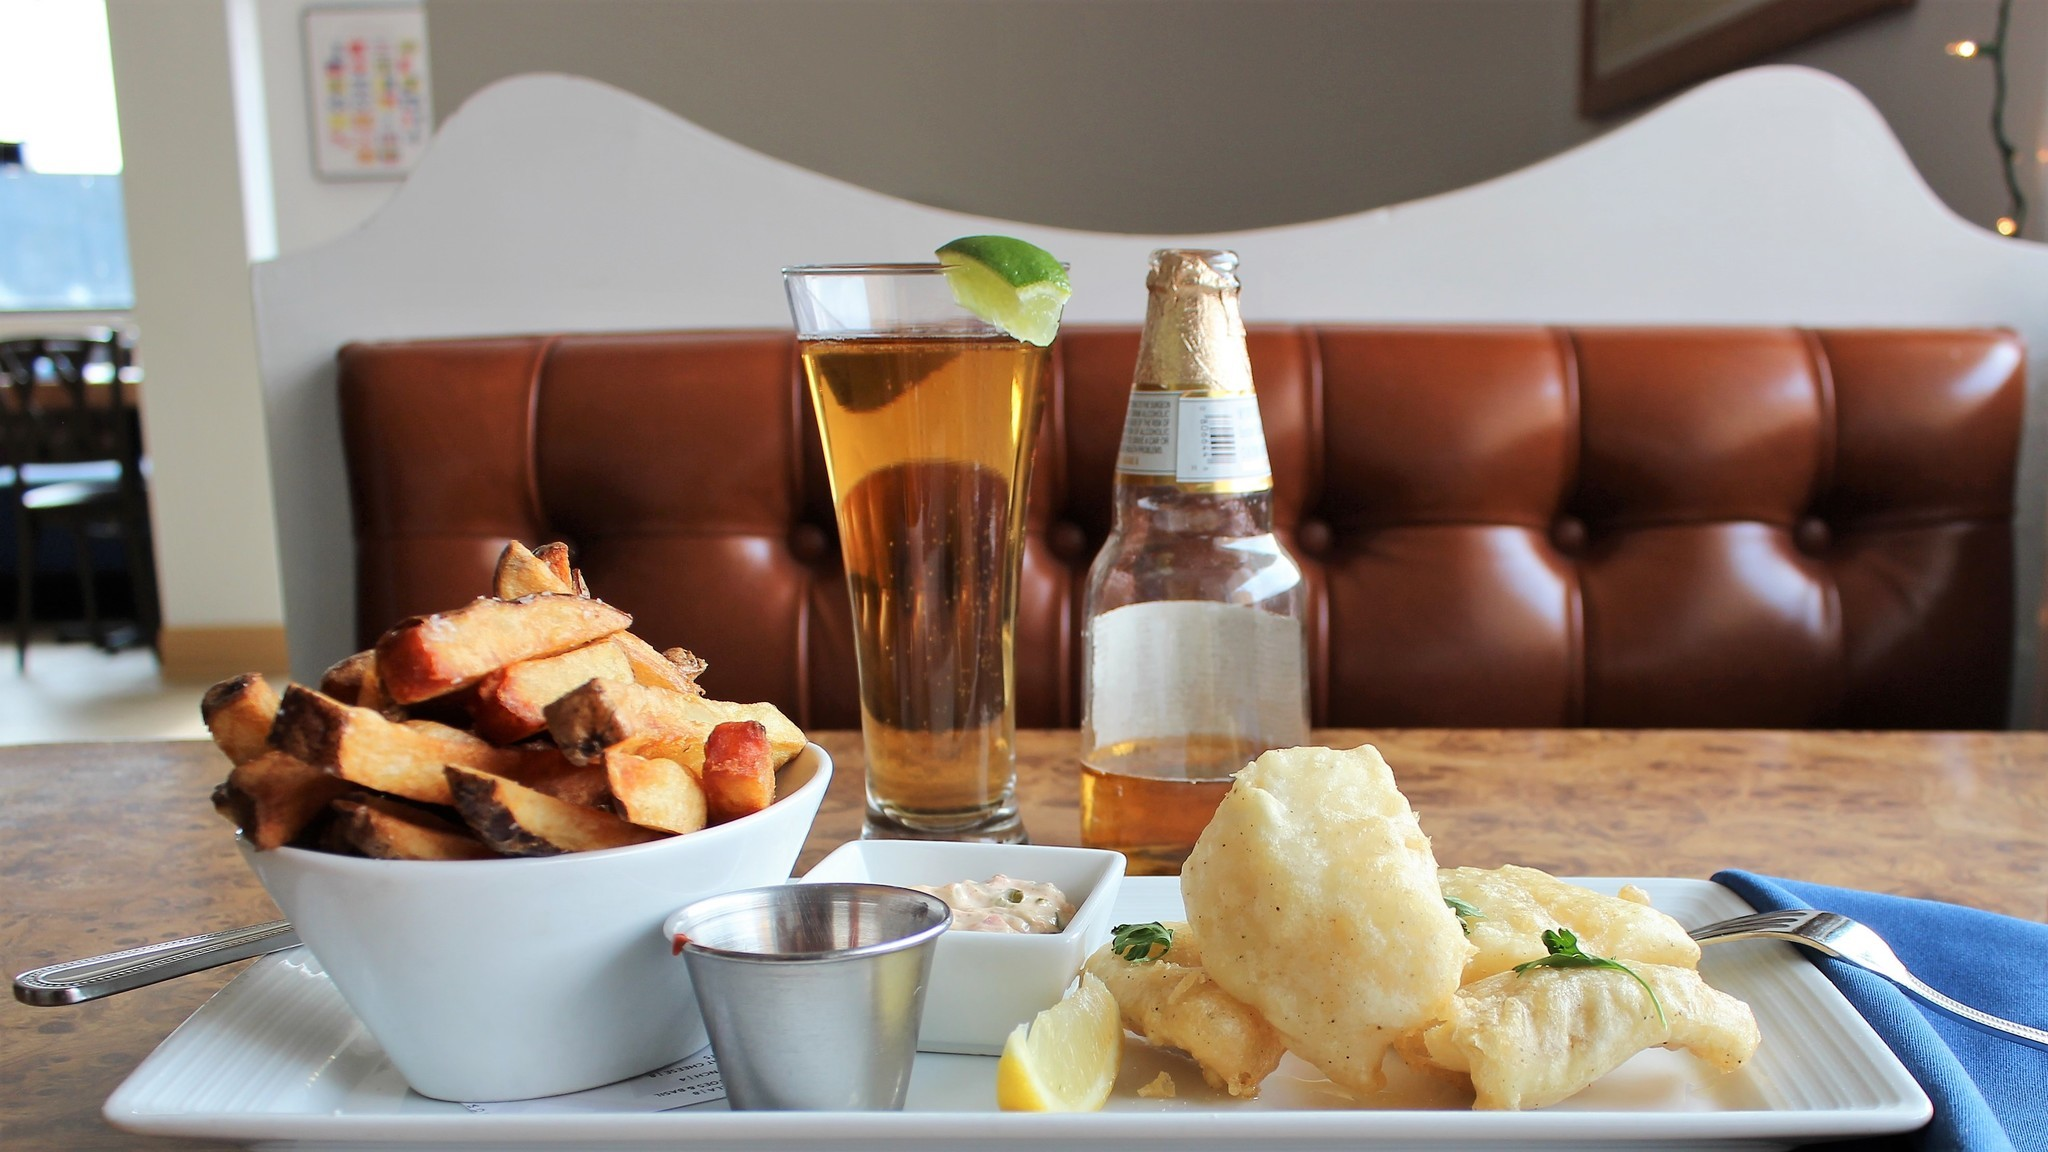 Fish and chips and a beer at Interurban Boathouse